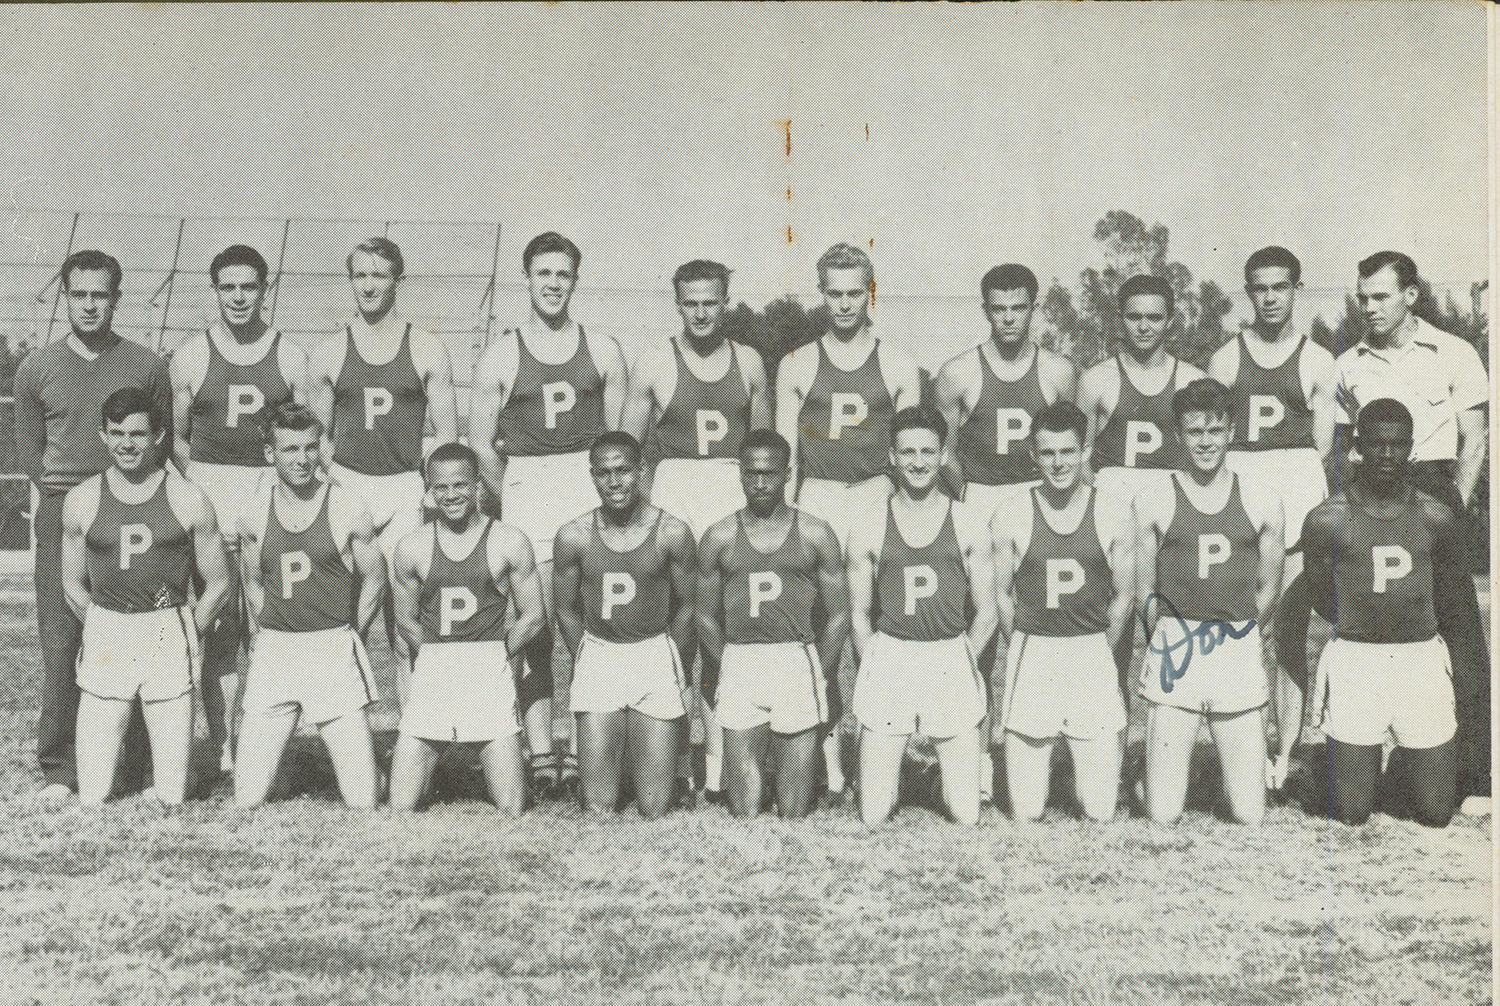 Jackie Robinson ran track for Pasadena Junior College from 1937-1938. He is pictured at the bottom row, far right. (National Baseball Hall of Fame and Museum)